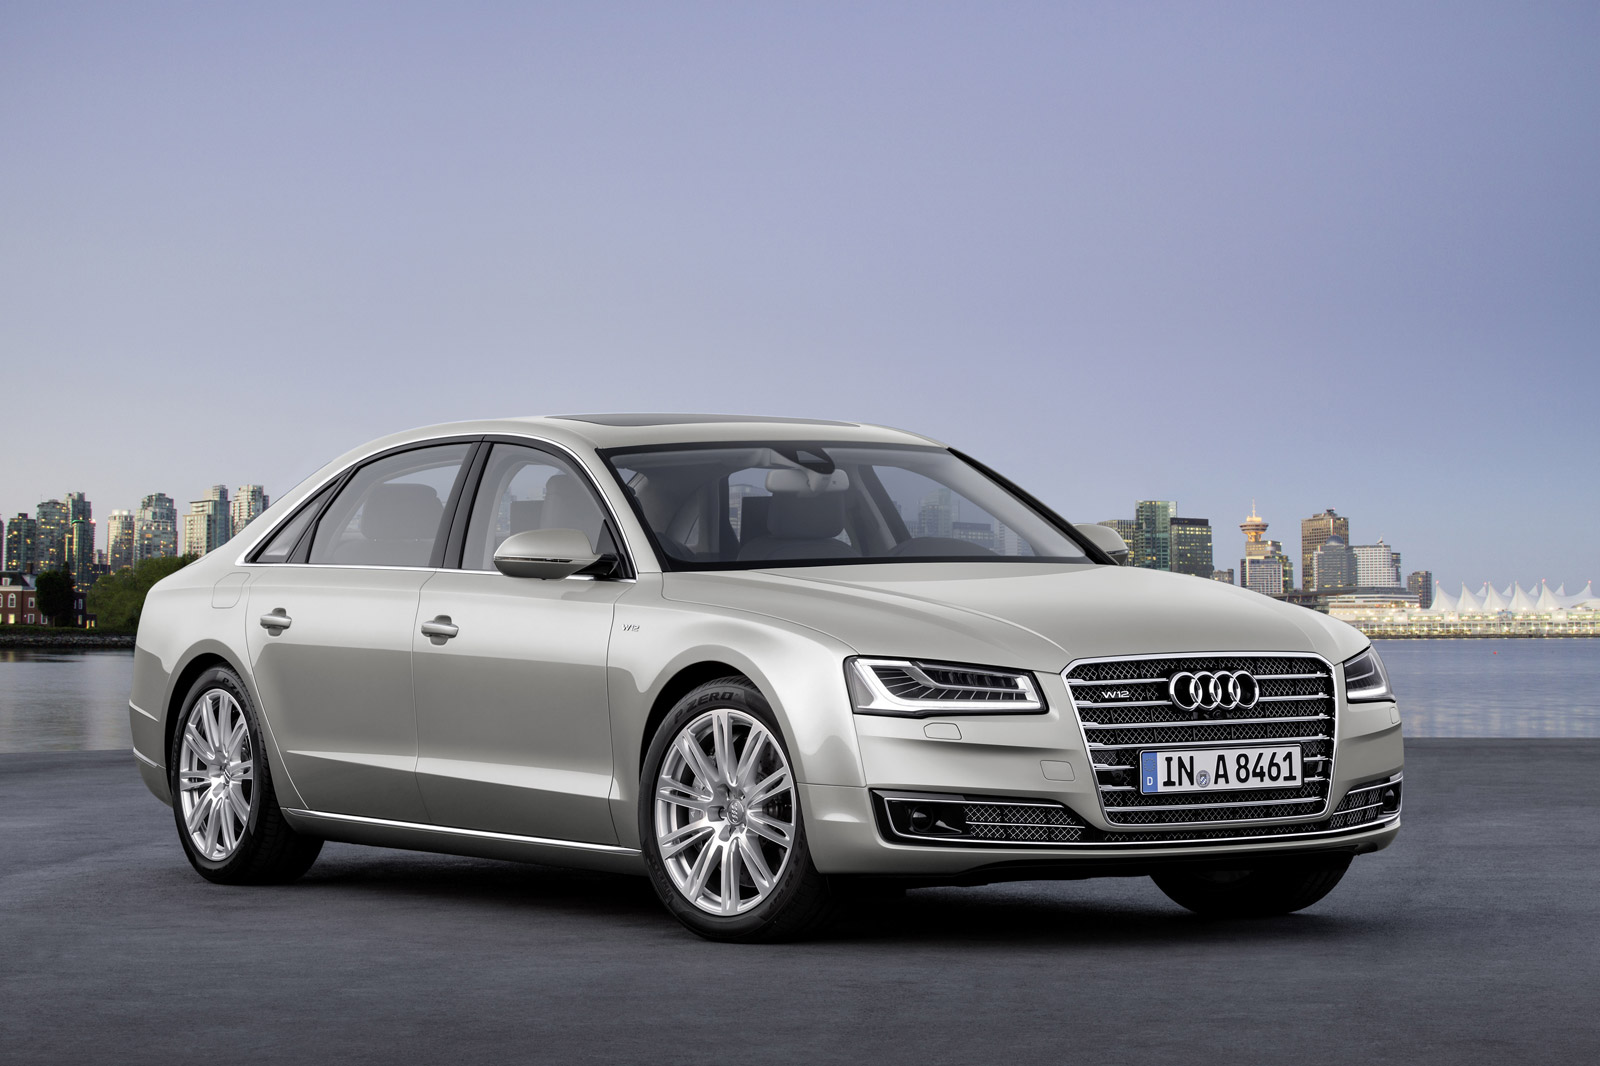 2015 Audi A8 Priced From $78,295